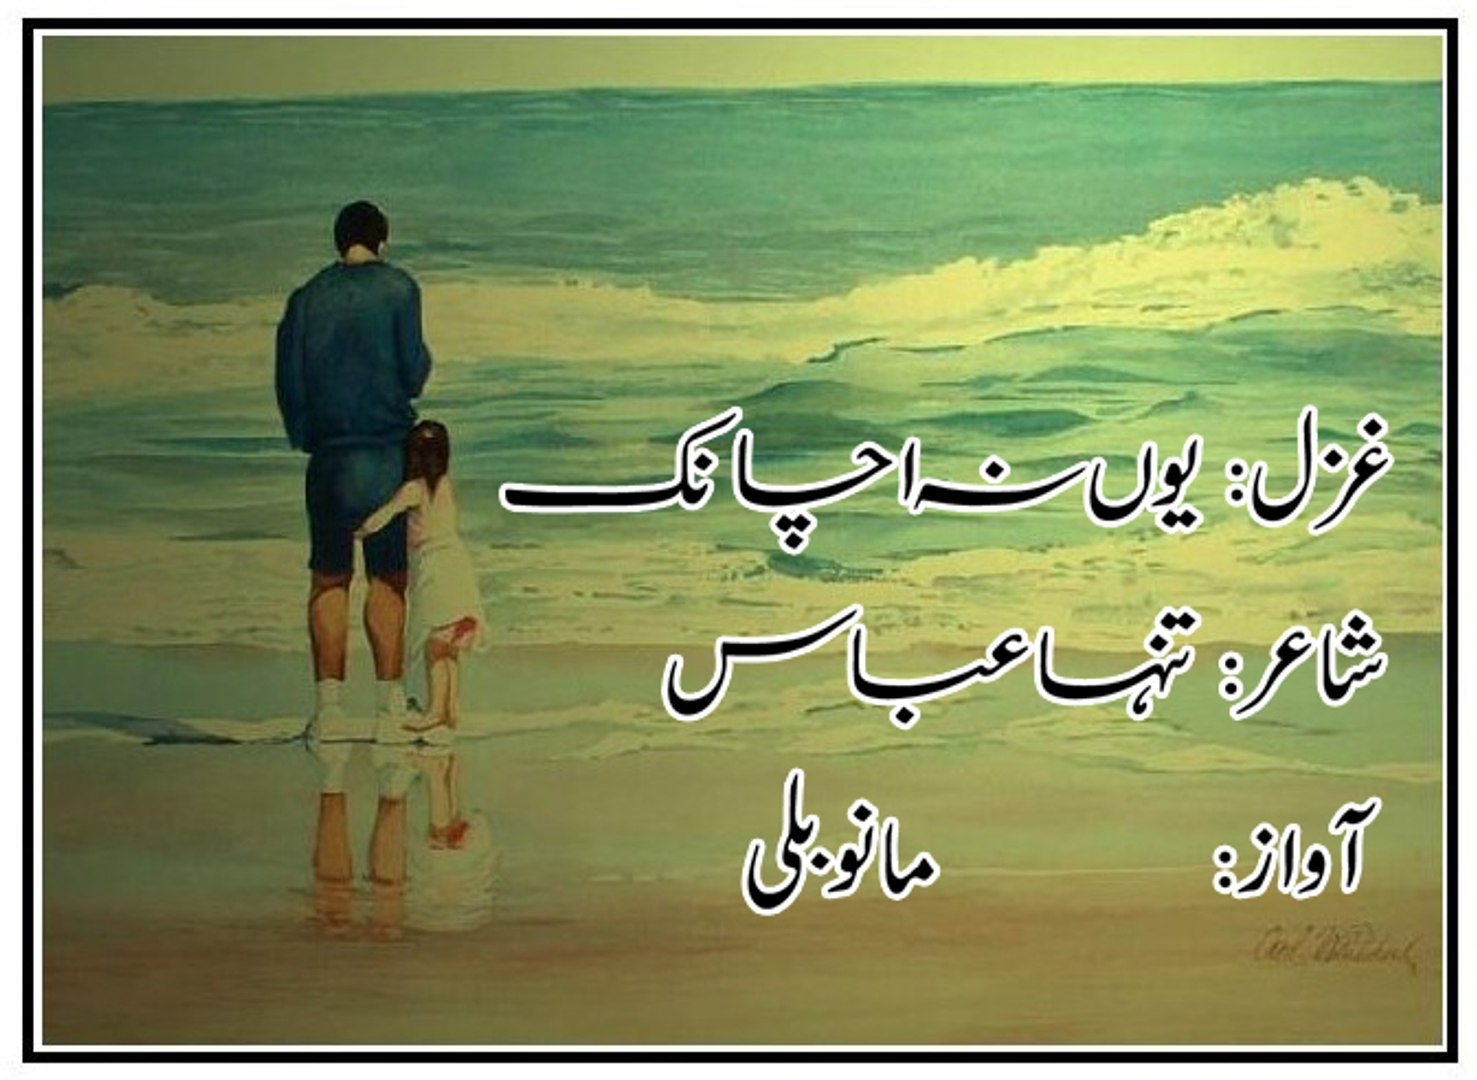 Kuch Din Aur Ther Jao :'( | Mano Billi | Sad Poetry| Heart Touching Poetry| Sad ghazal | sad so